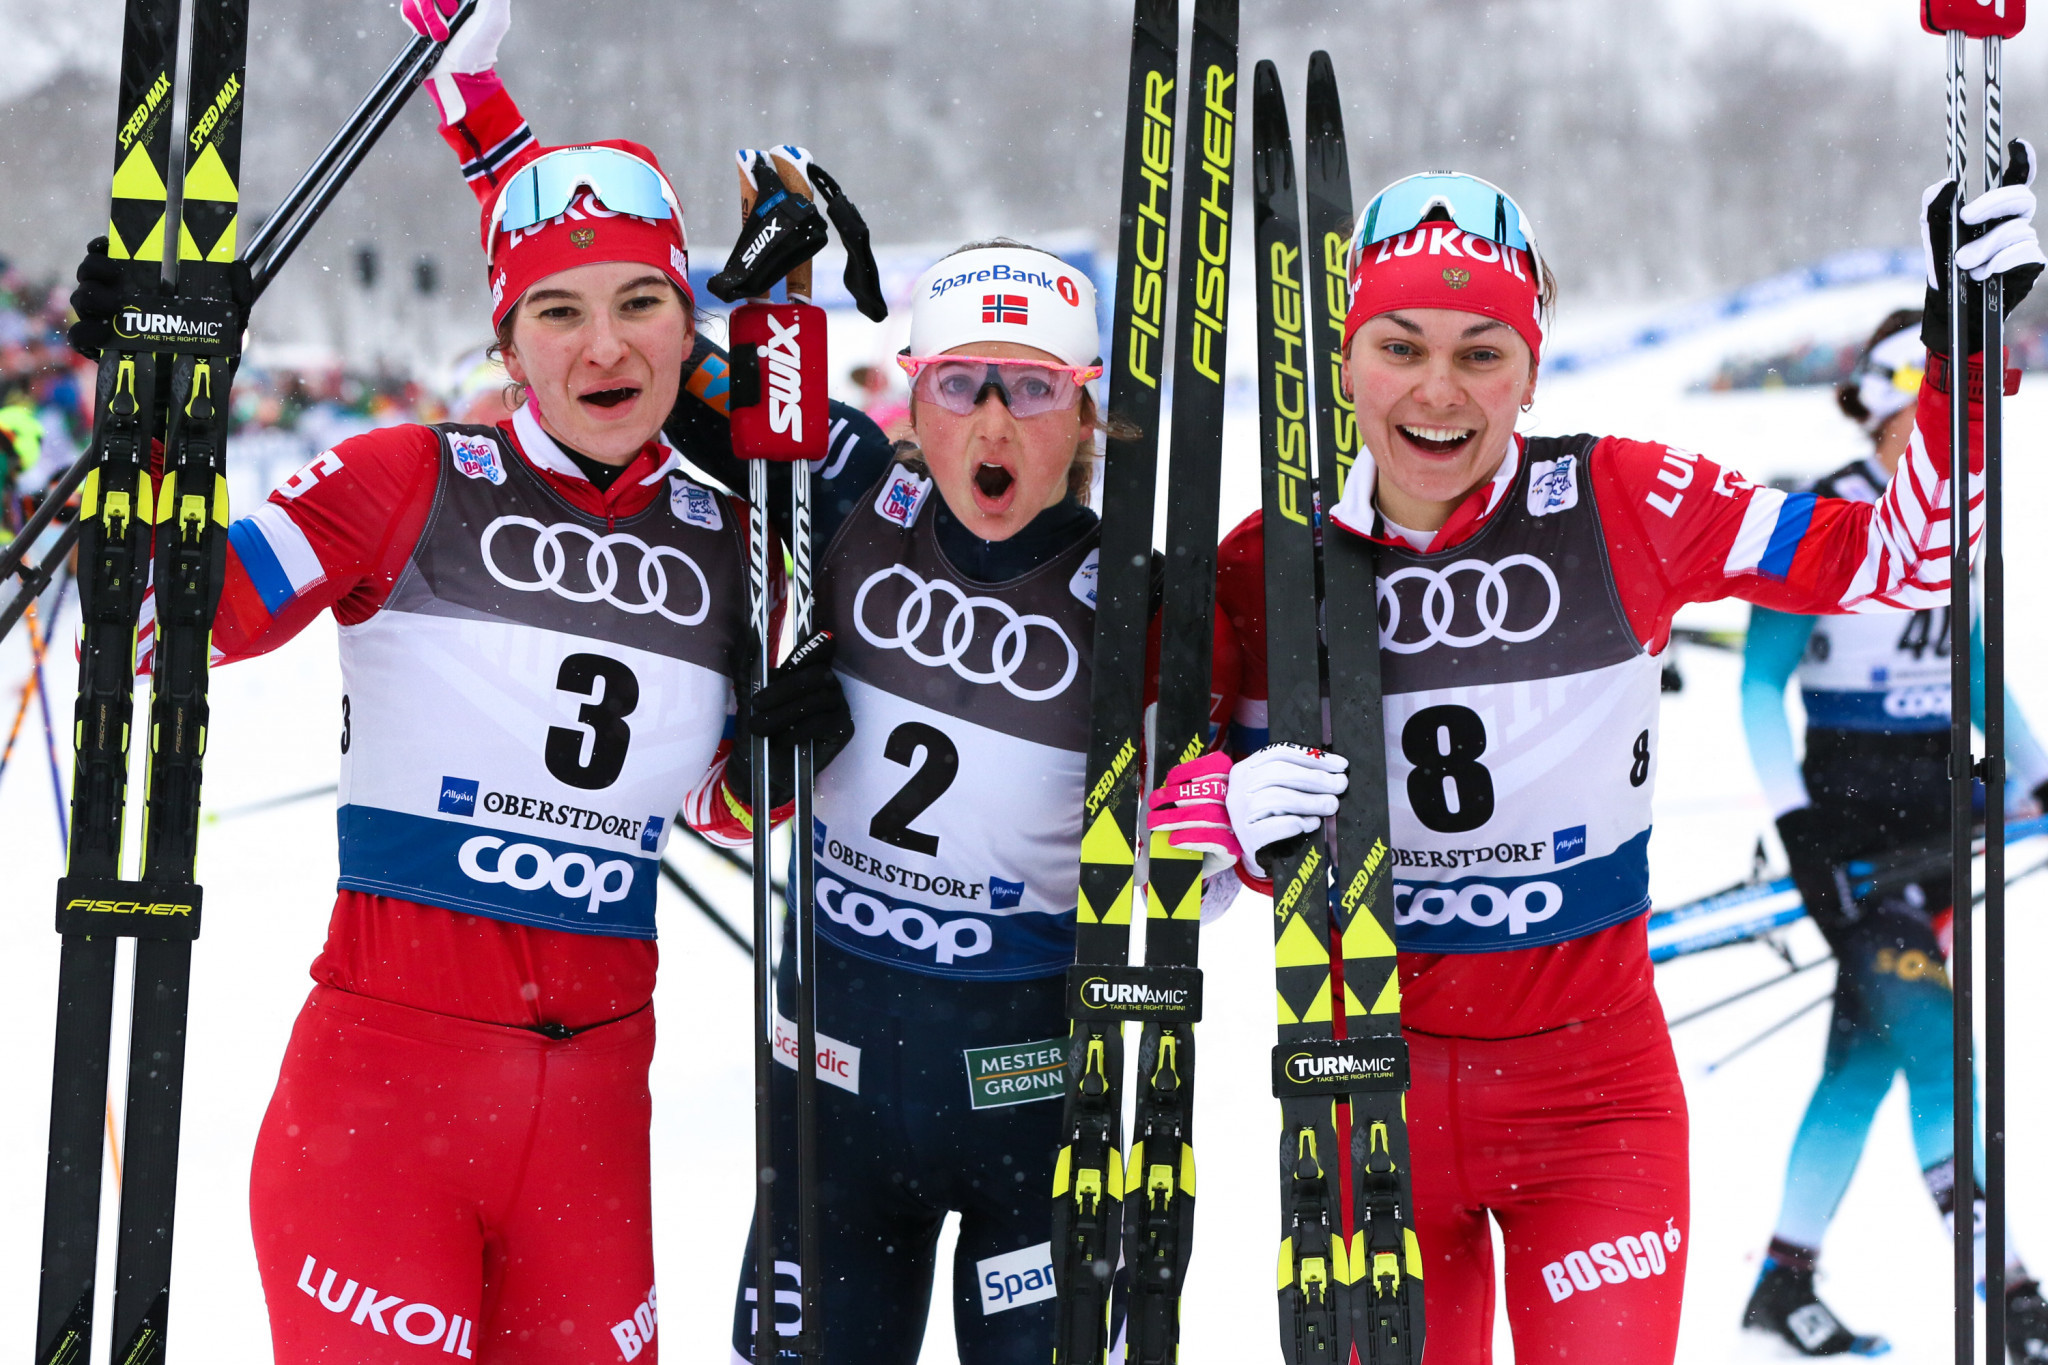 Ingvild Flugstad Østberg, centre, won the women's race in Oberstdorf to take the overall Tour de Ski lead ©Getty Images